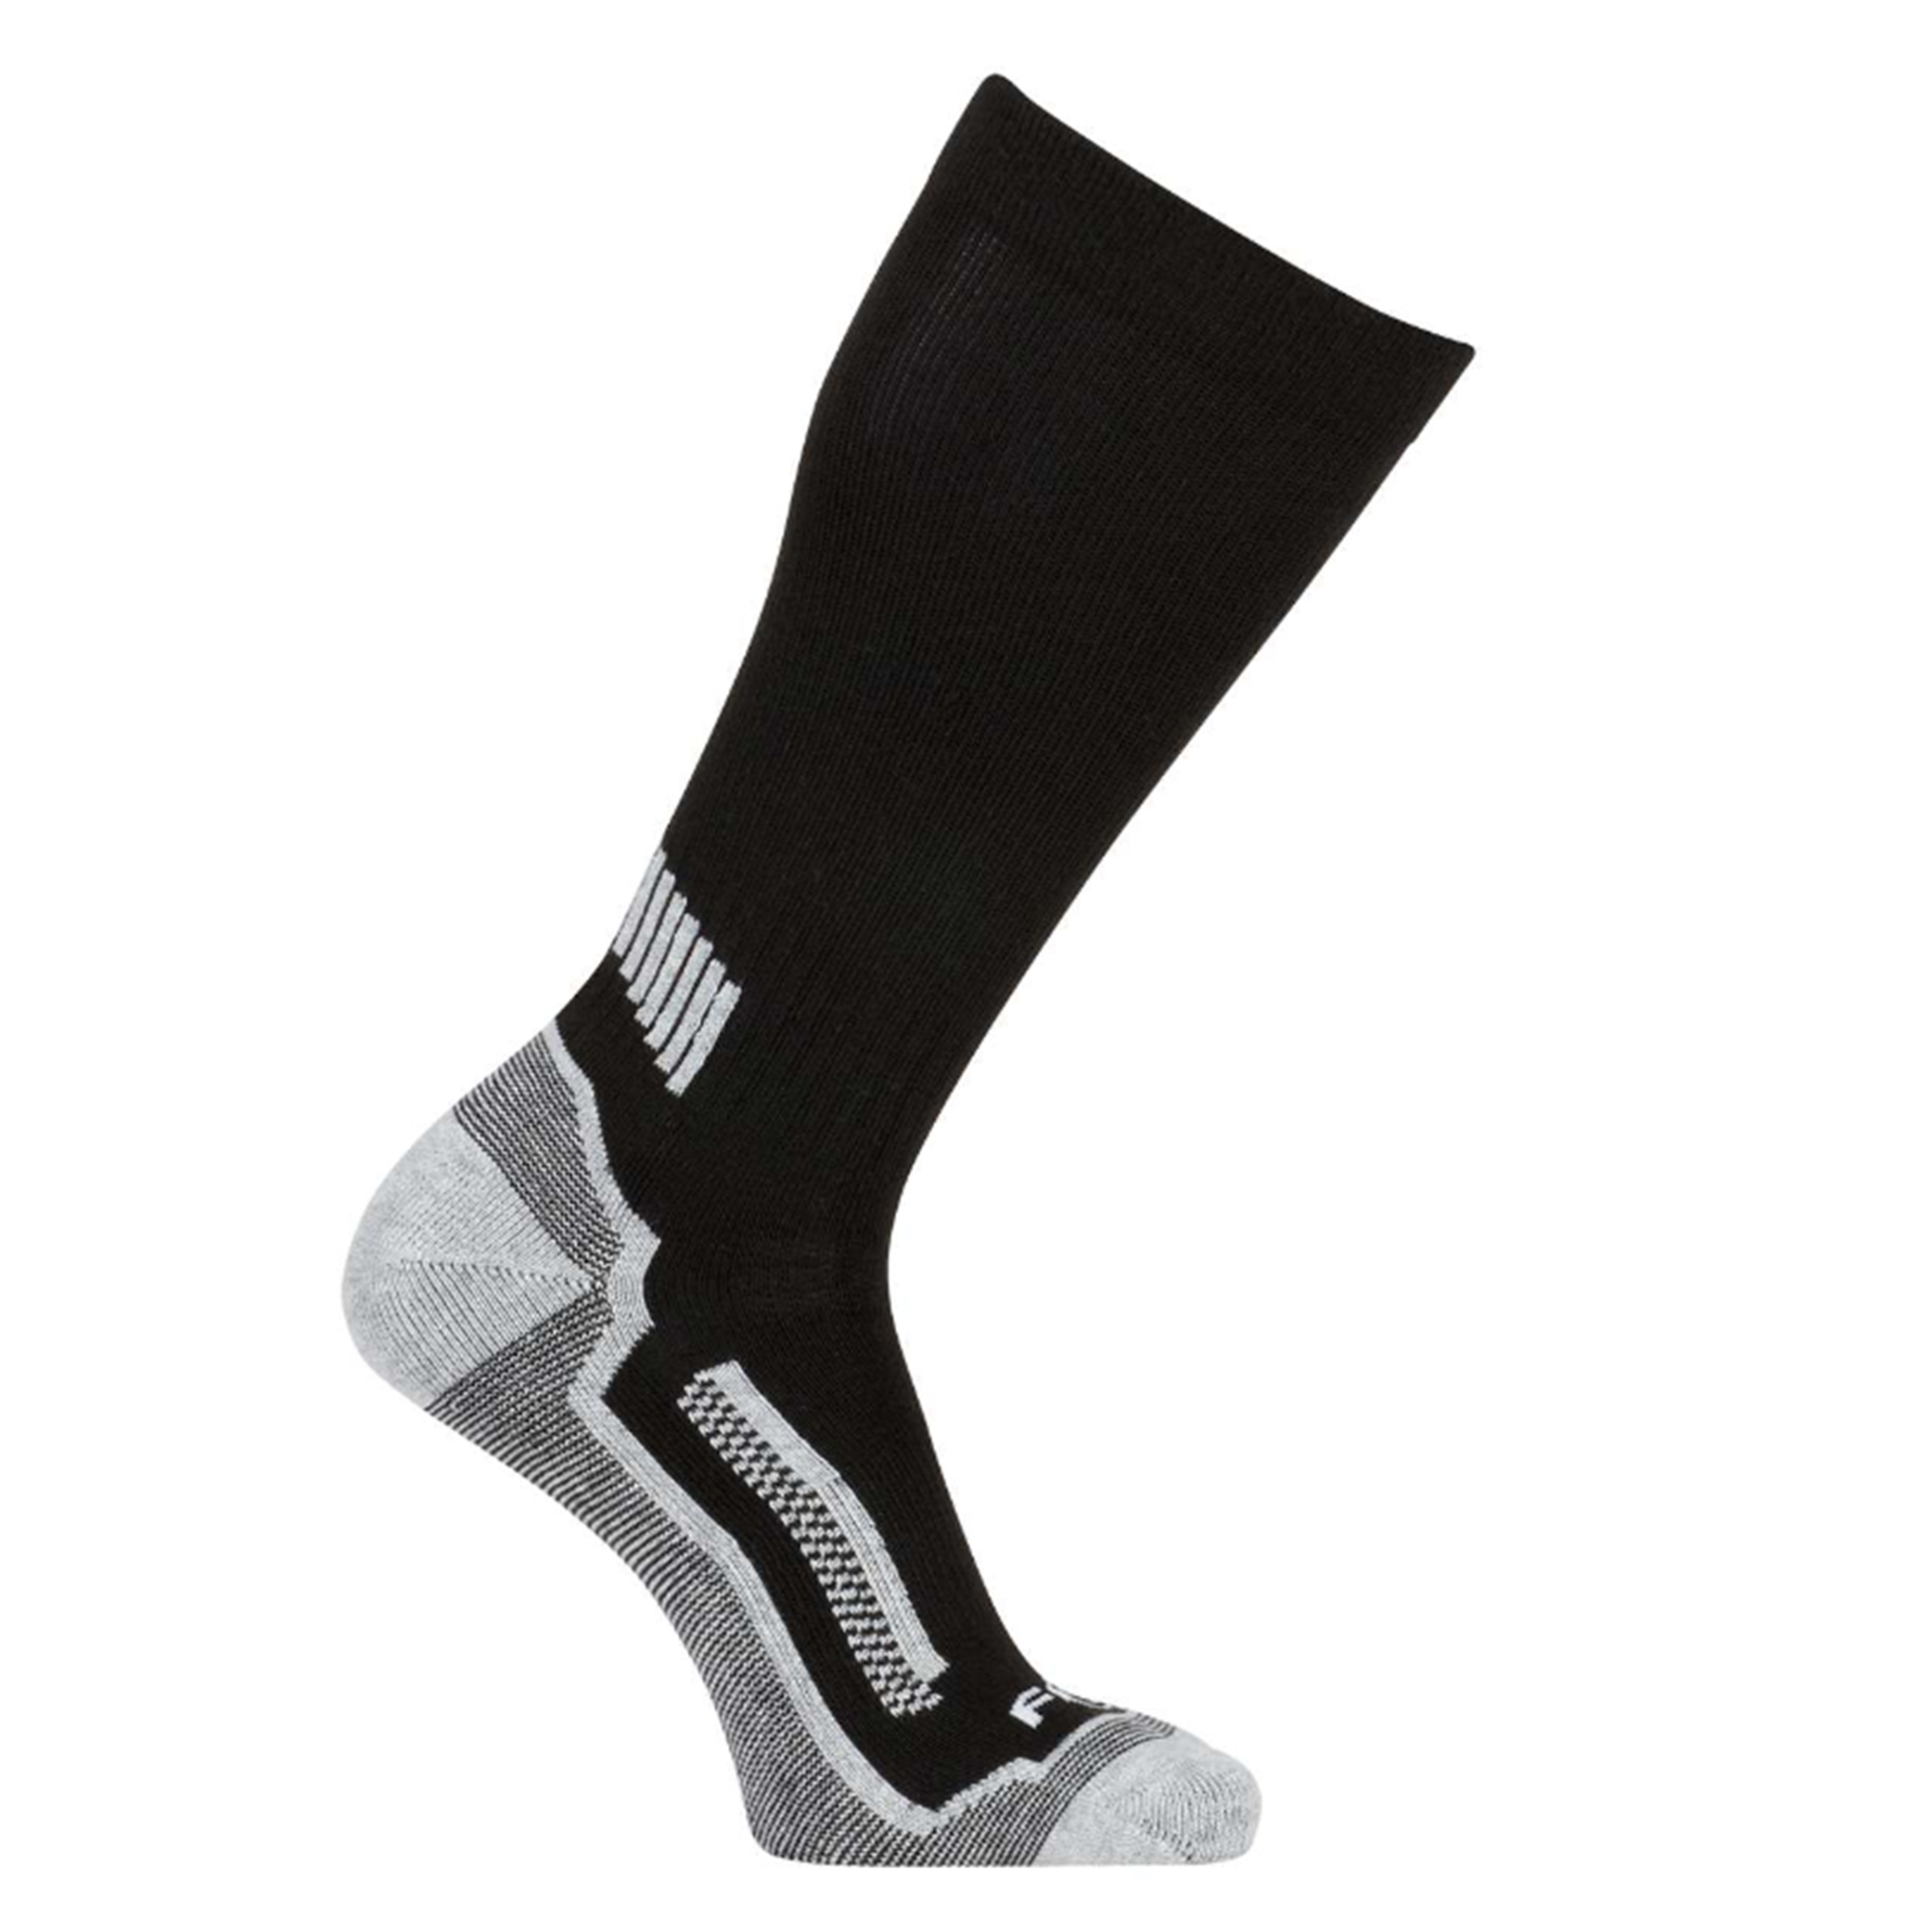 Force Performance Crew Socks 3-Pack, Black, swatch